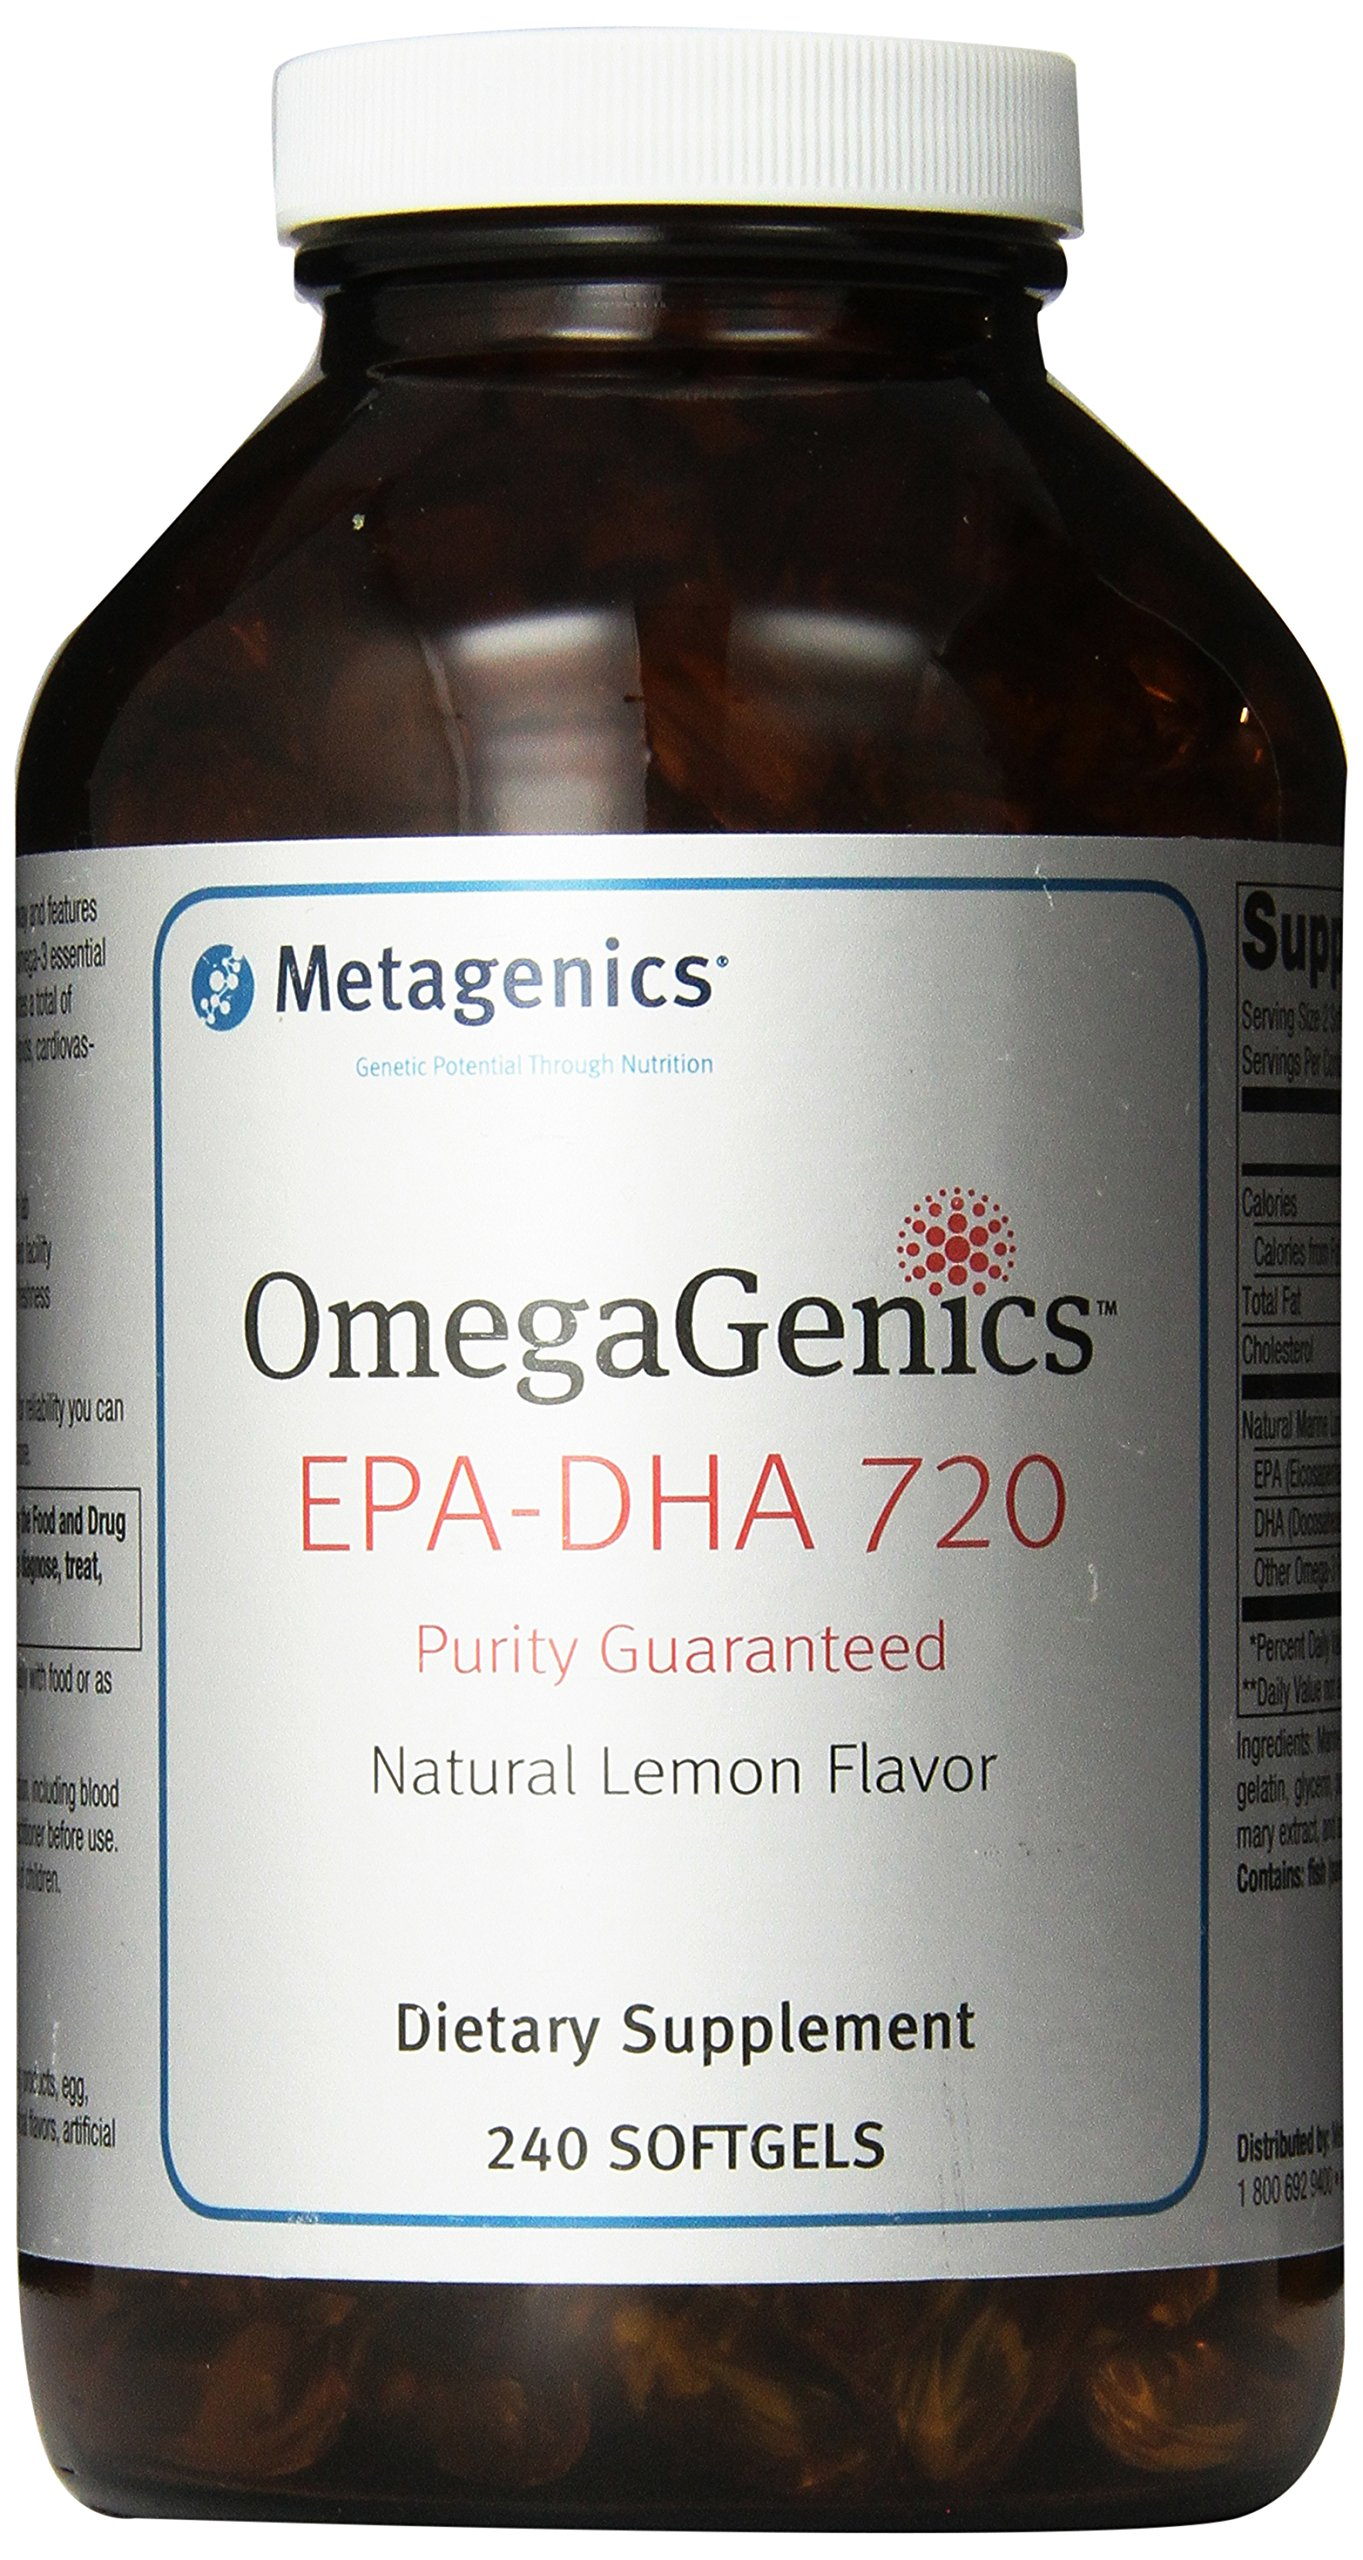 Metagenics - OmegaGenics EPA-DHA 720, 240 Count by Metagenics (Image #1)